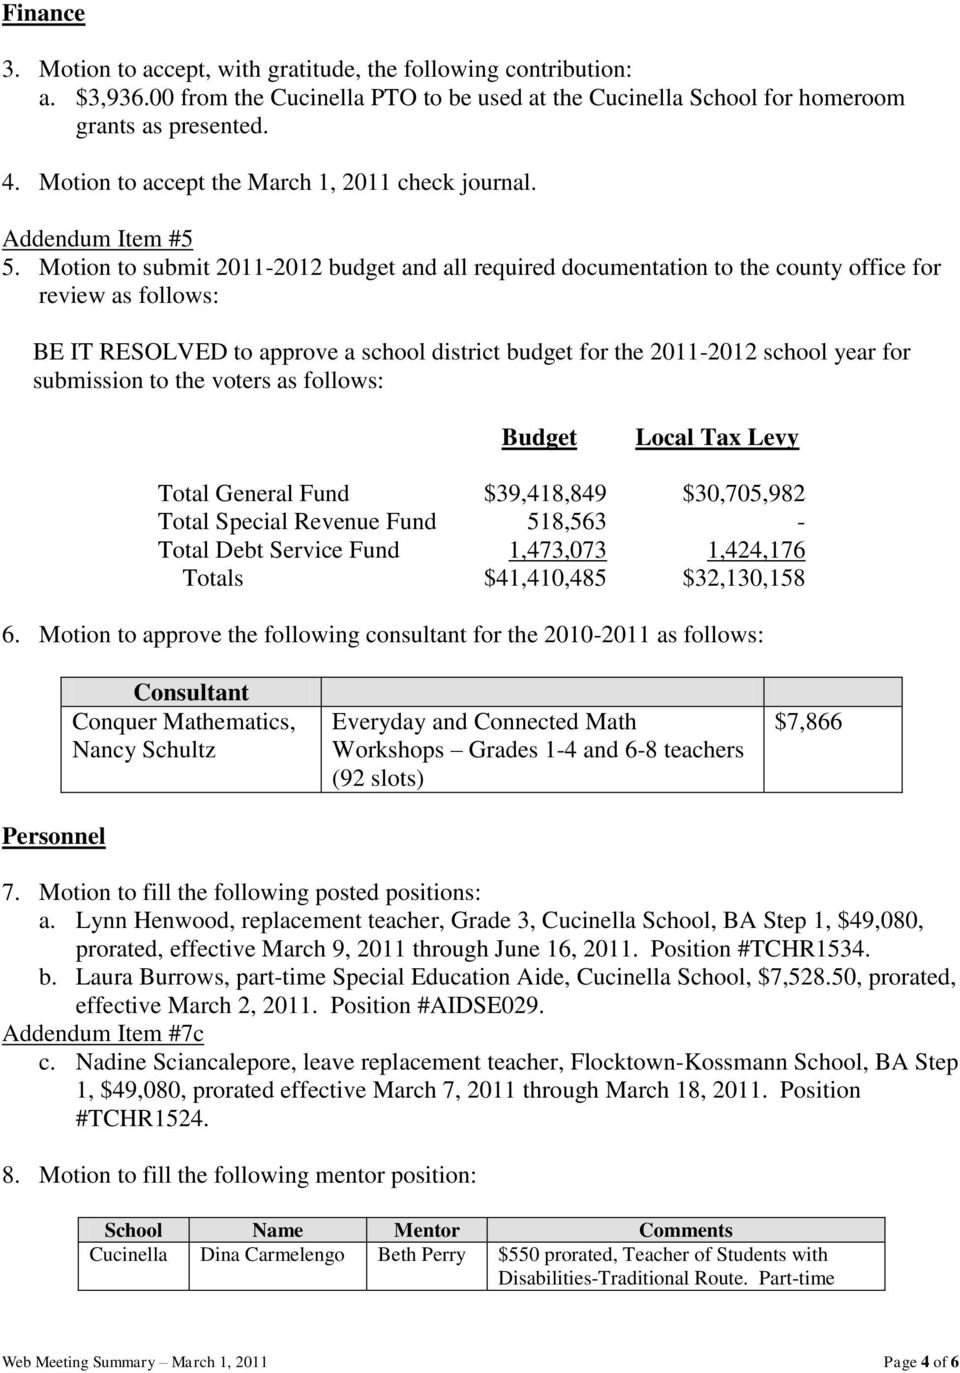 Motion to submit 2011-2012 budget and all required documentation to the county office for review as follows: BE IT RESOLVED to approve a school district budget for the 2011-2012 school year for